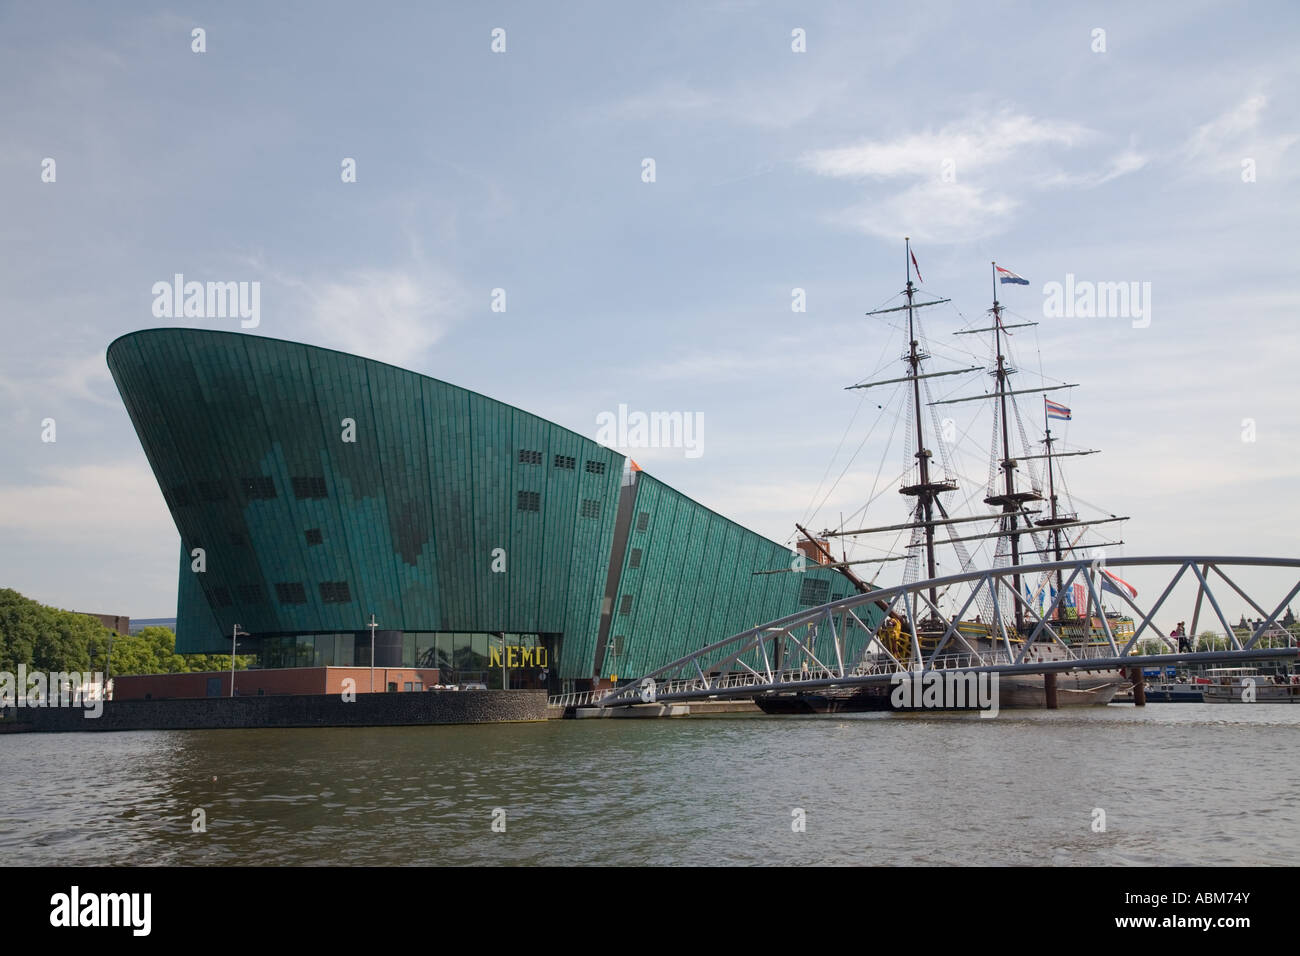 Nemo and replica of Dutch East India Company Boat, Amsterdam, Netherlands - Stock Image